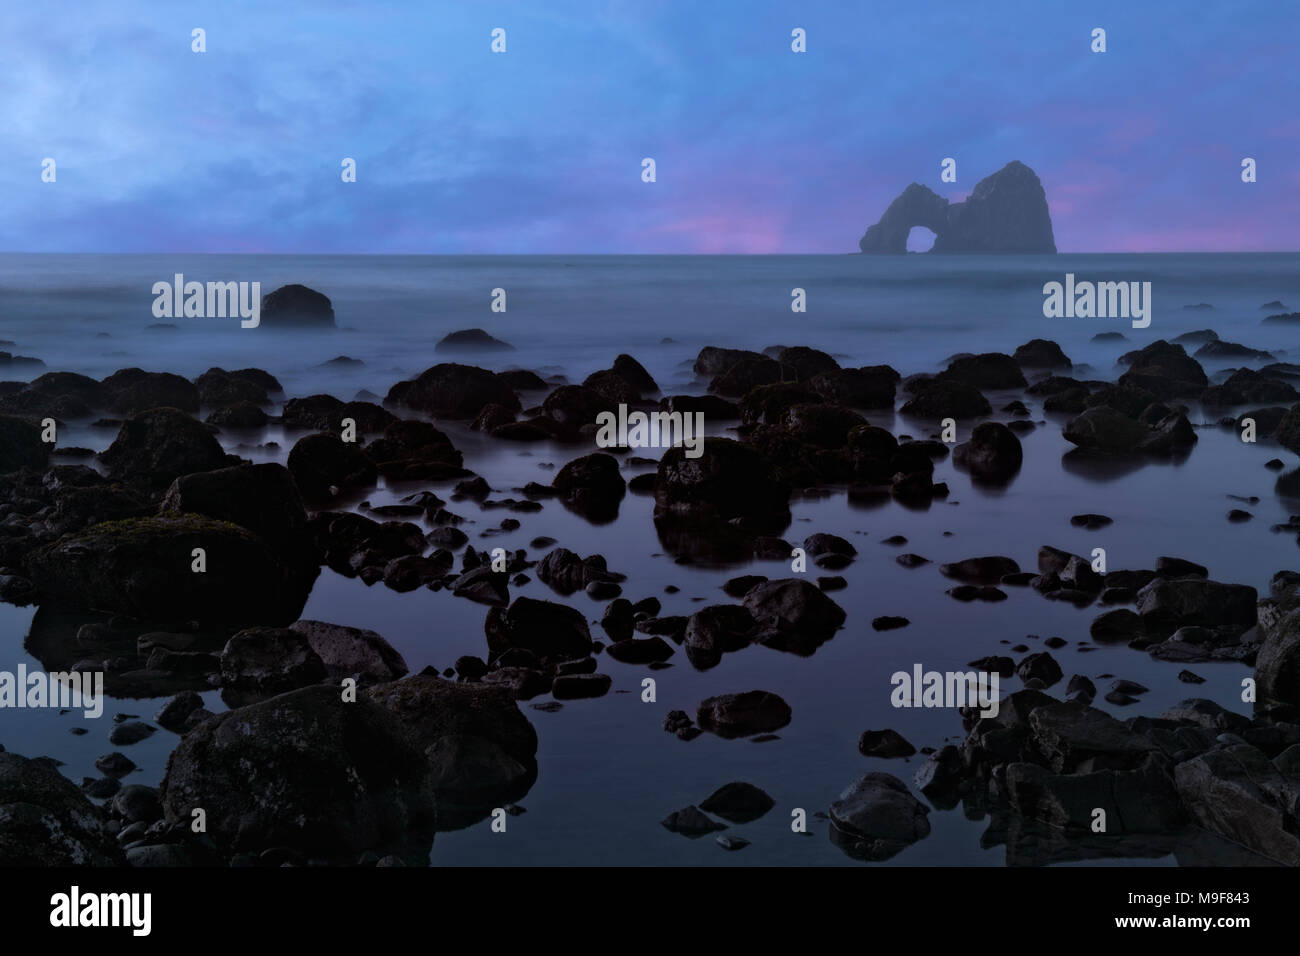 Civil twilight at Crook Point with offshore Mack Arch along Oregon's south coastline and Curry County. - Stock Image